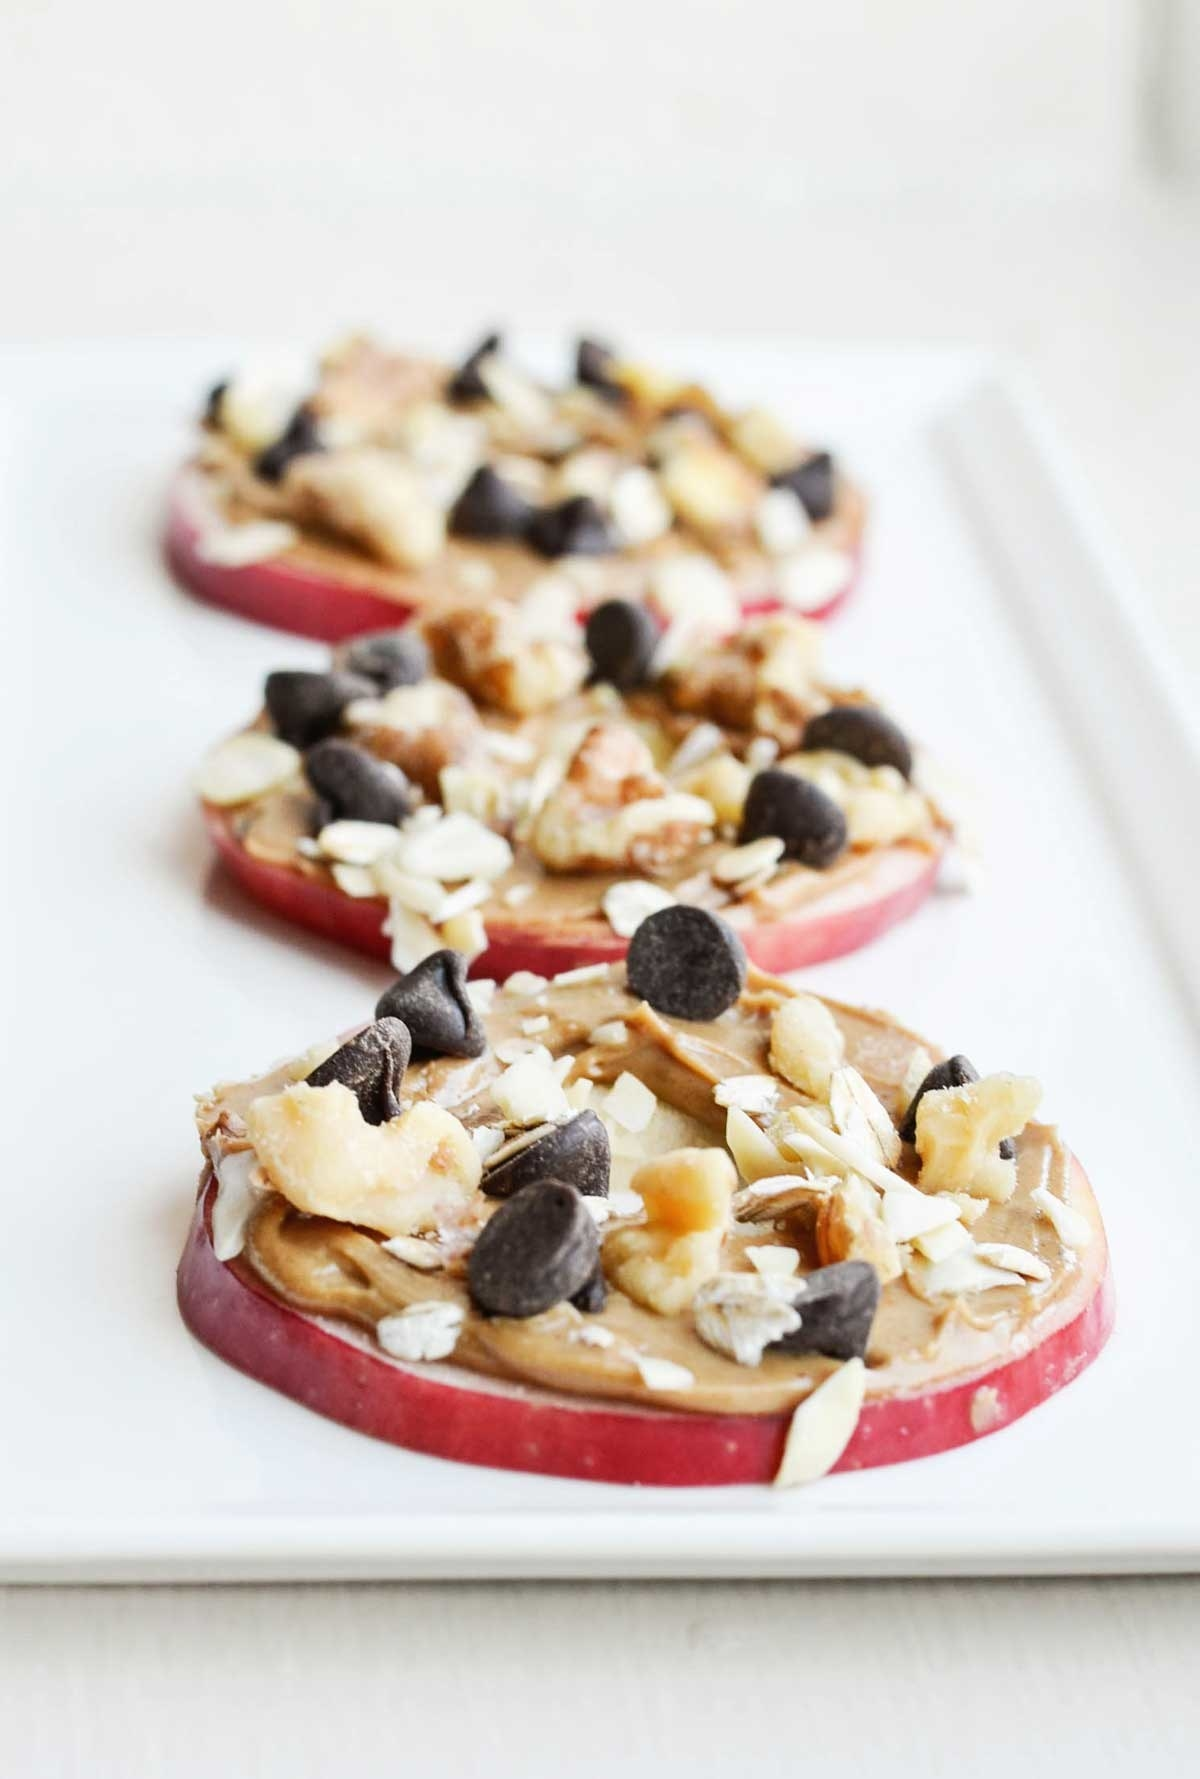 Start with sliced apples and spice them up with your favorite toppings like peanut butter, nutella, cream cheese, nuts, dried fruit, and more. Get the recipe here.